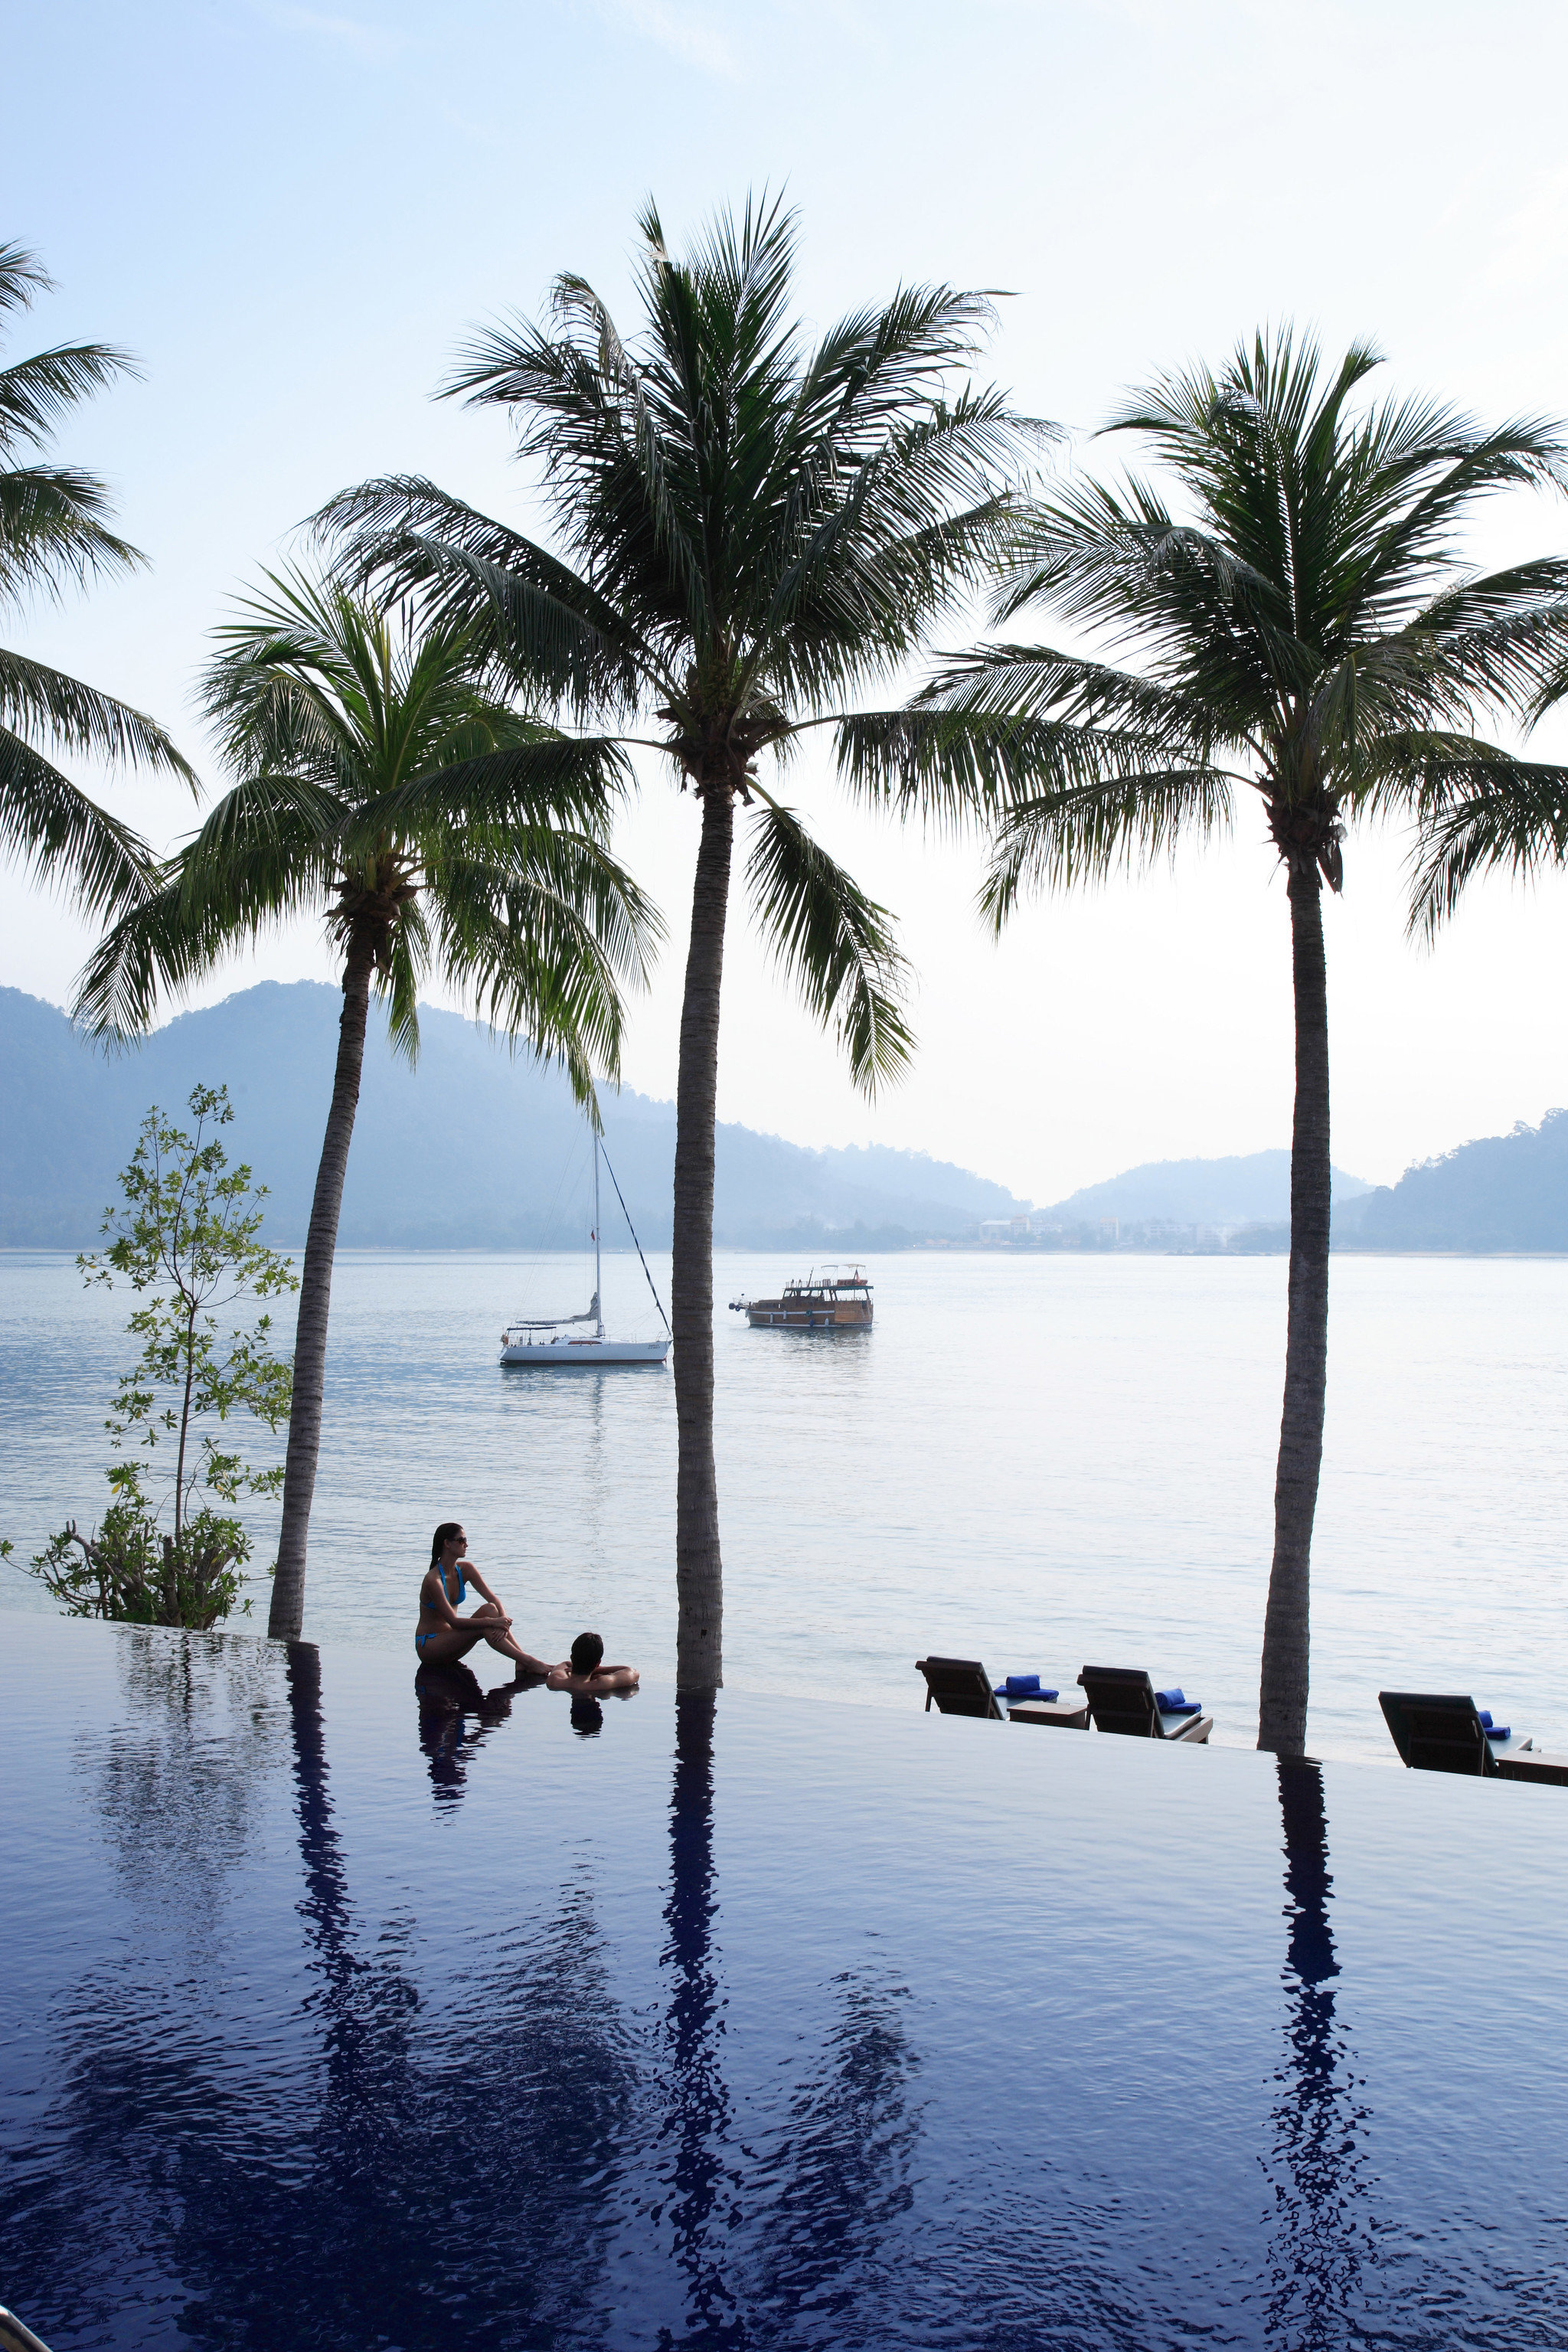 Hotels water sky outdoor tree plant Boat Lake palm body of water shore palm family Sea Beach Ocean vacation arecales woody plant Coast land plant reflection bay tropics Lagoon flowering plant day